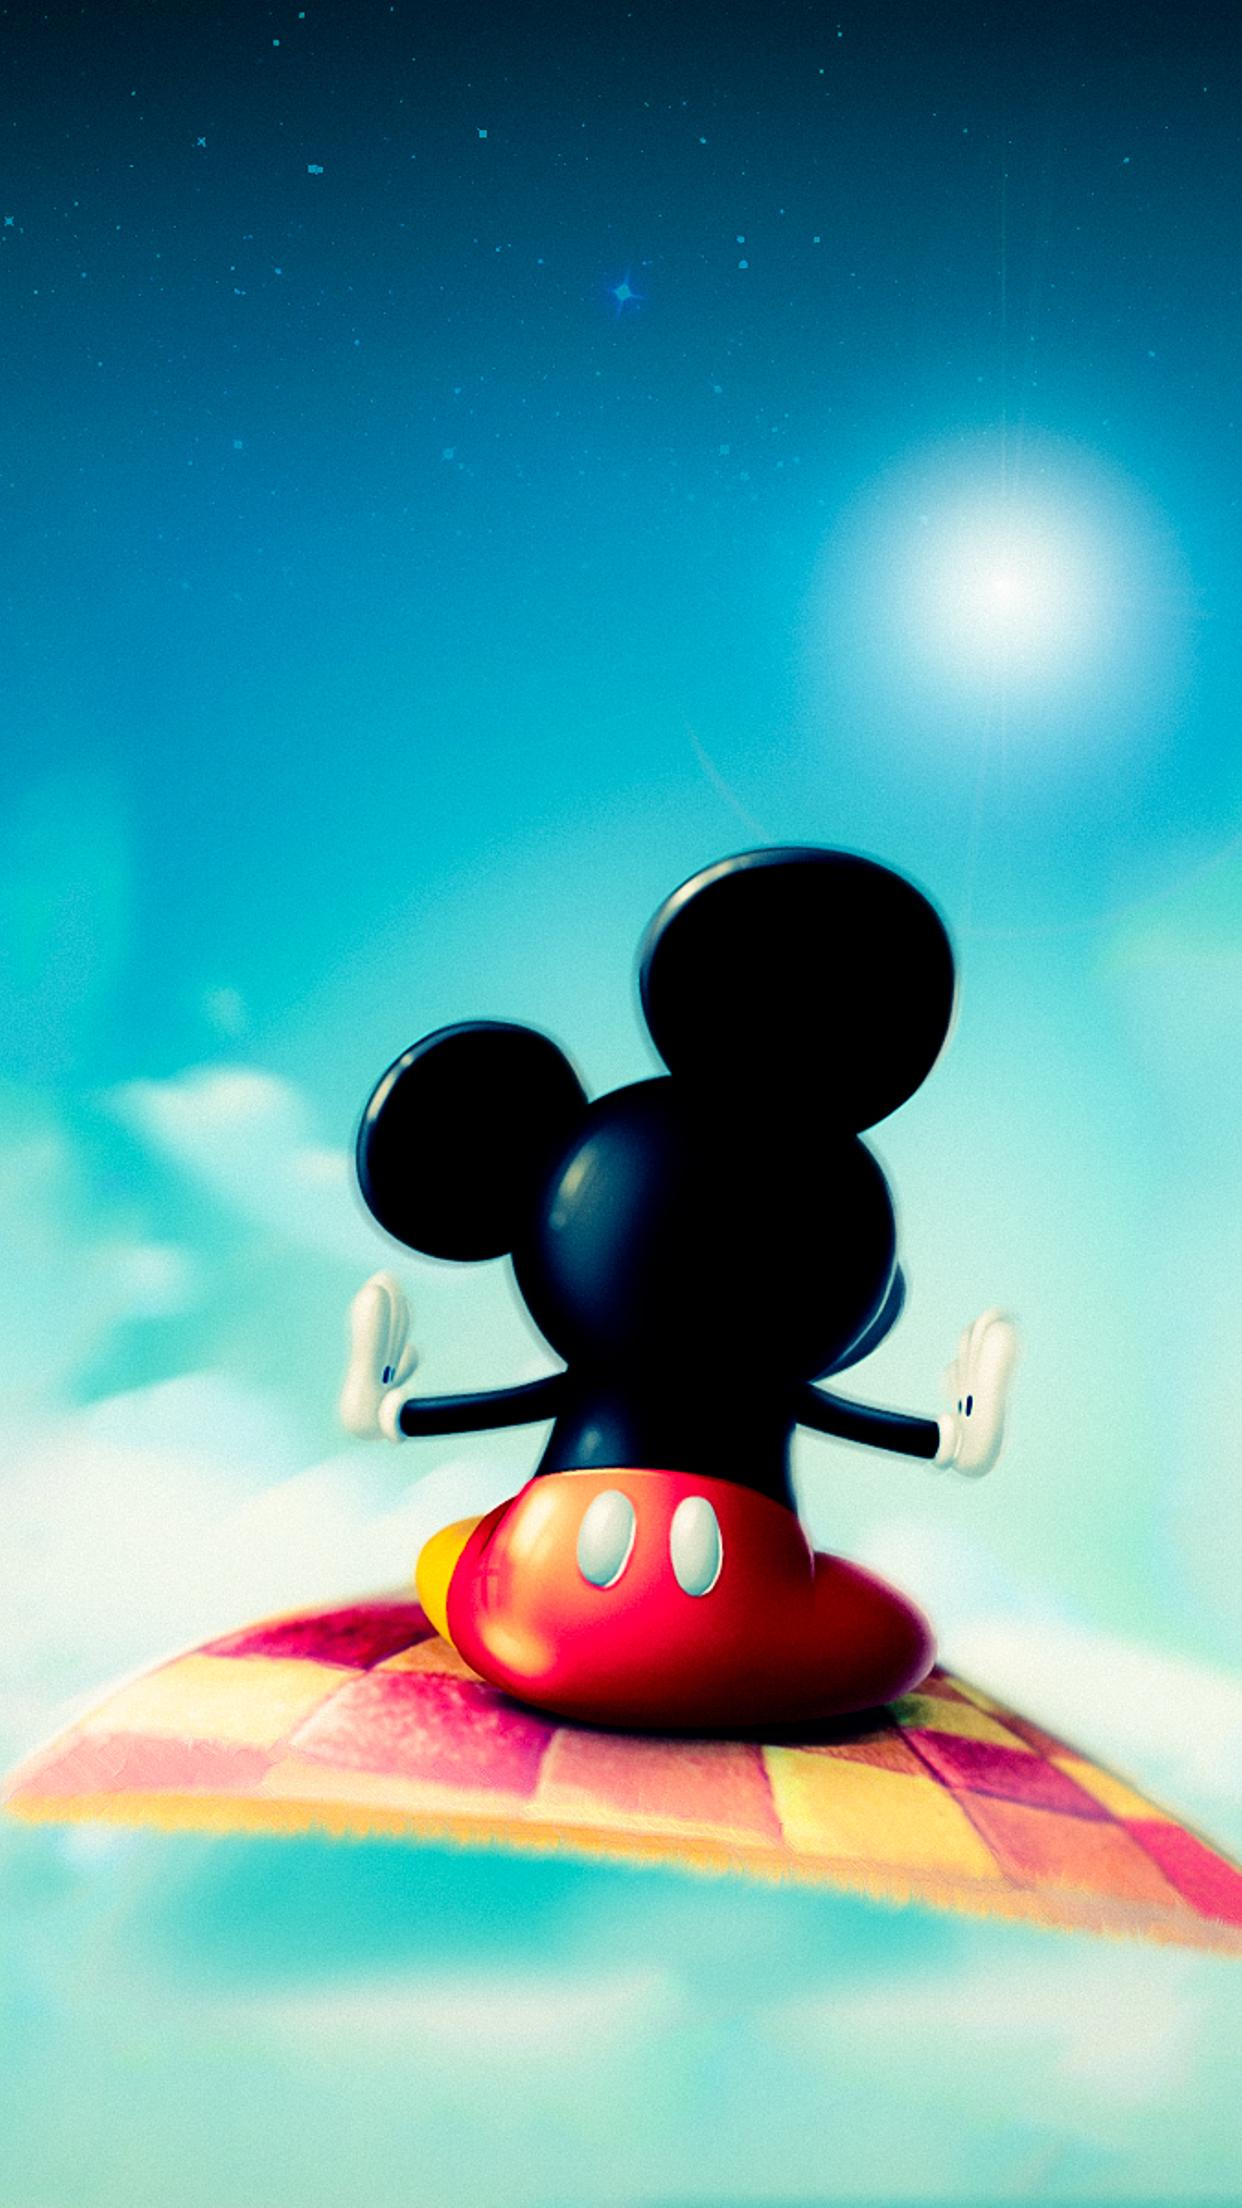 mickey mouse in space with a carpet wallpaper download 1242x2208